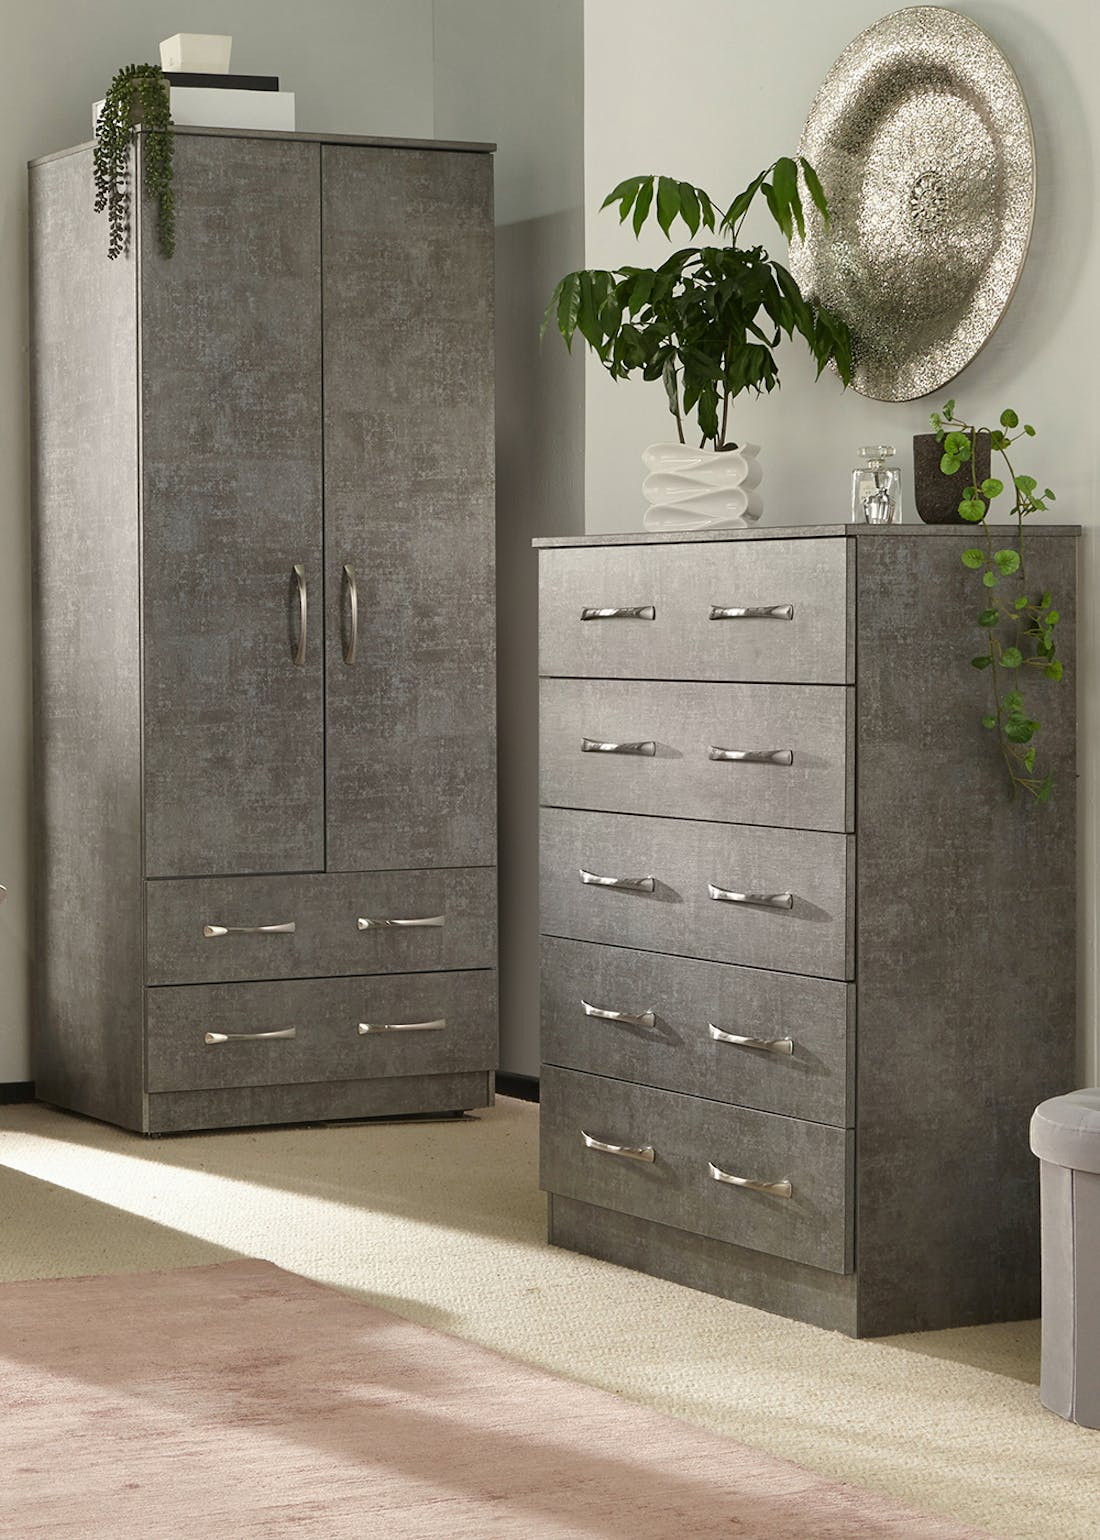 Swift Roma 4 Piece Bedroom Furniture Collection